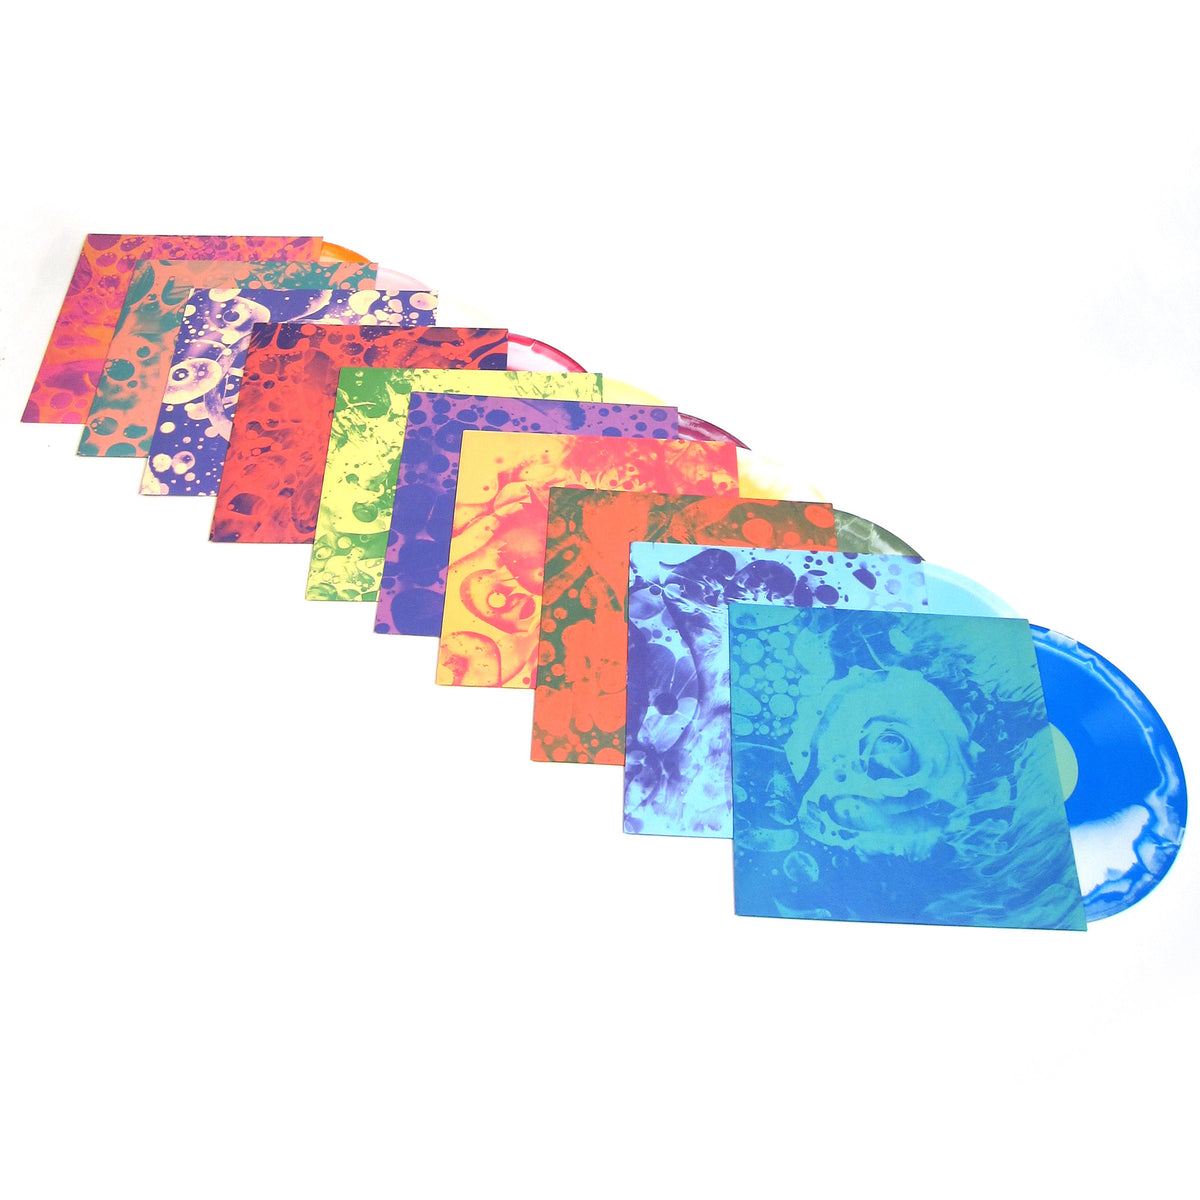 4AD: Day of the Dead - Grateful Dead Tribute (Colored Vinyl) Vinyl 10LP Boxset